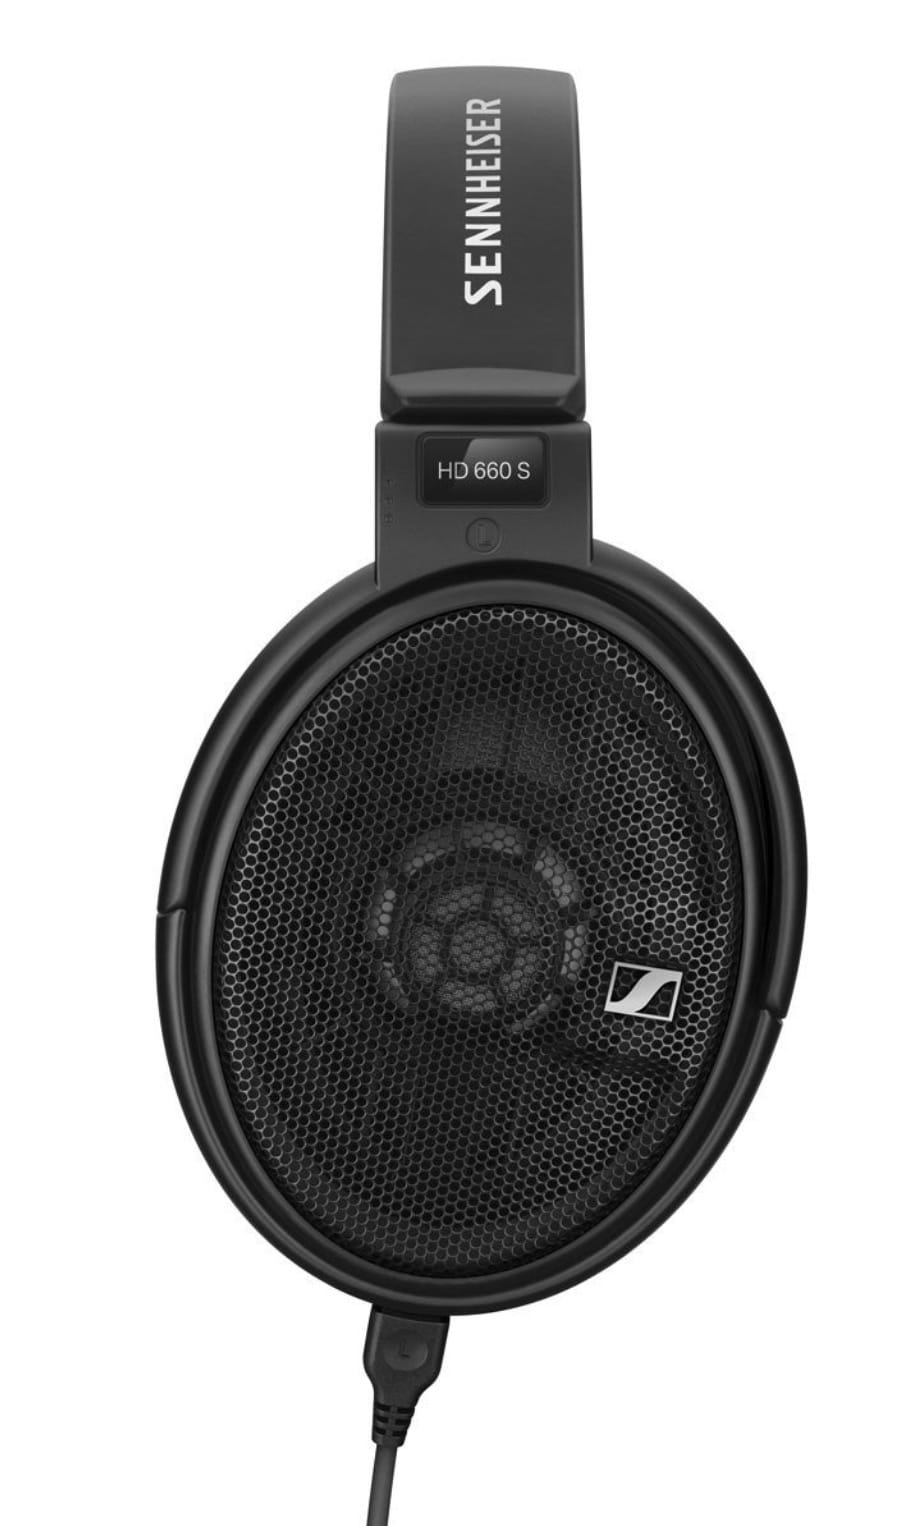 Sennheiser Hd 660 S New Open Dynamic Headphones The Audiophile Man 800 Stereo Headphone Model Builds On Legacy Of 650 With A And Improved Transducer Design That Delivers Lower Harmonic Distortion Said Company